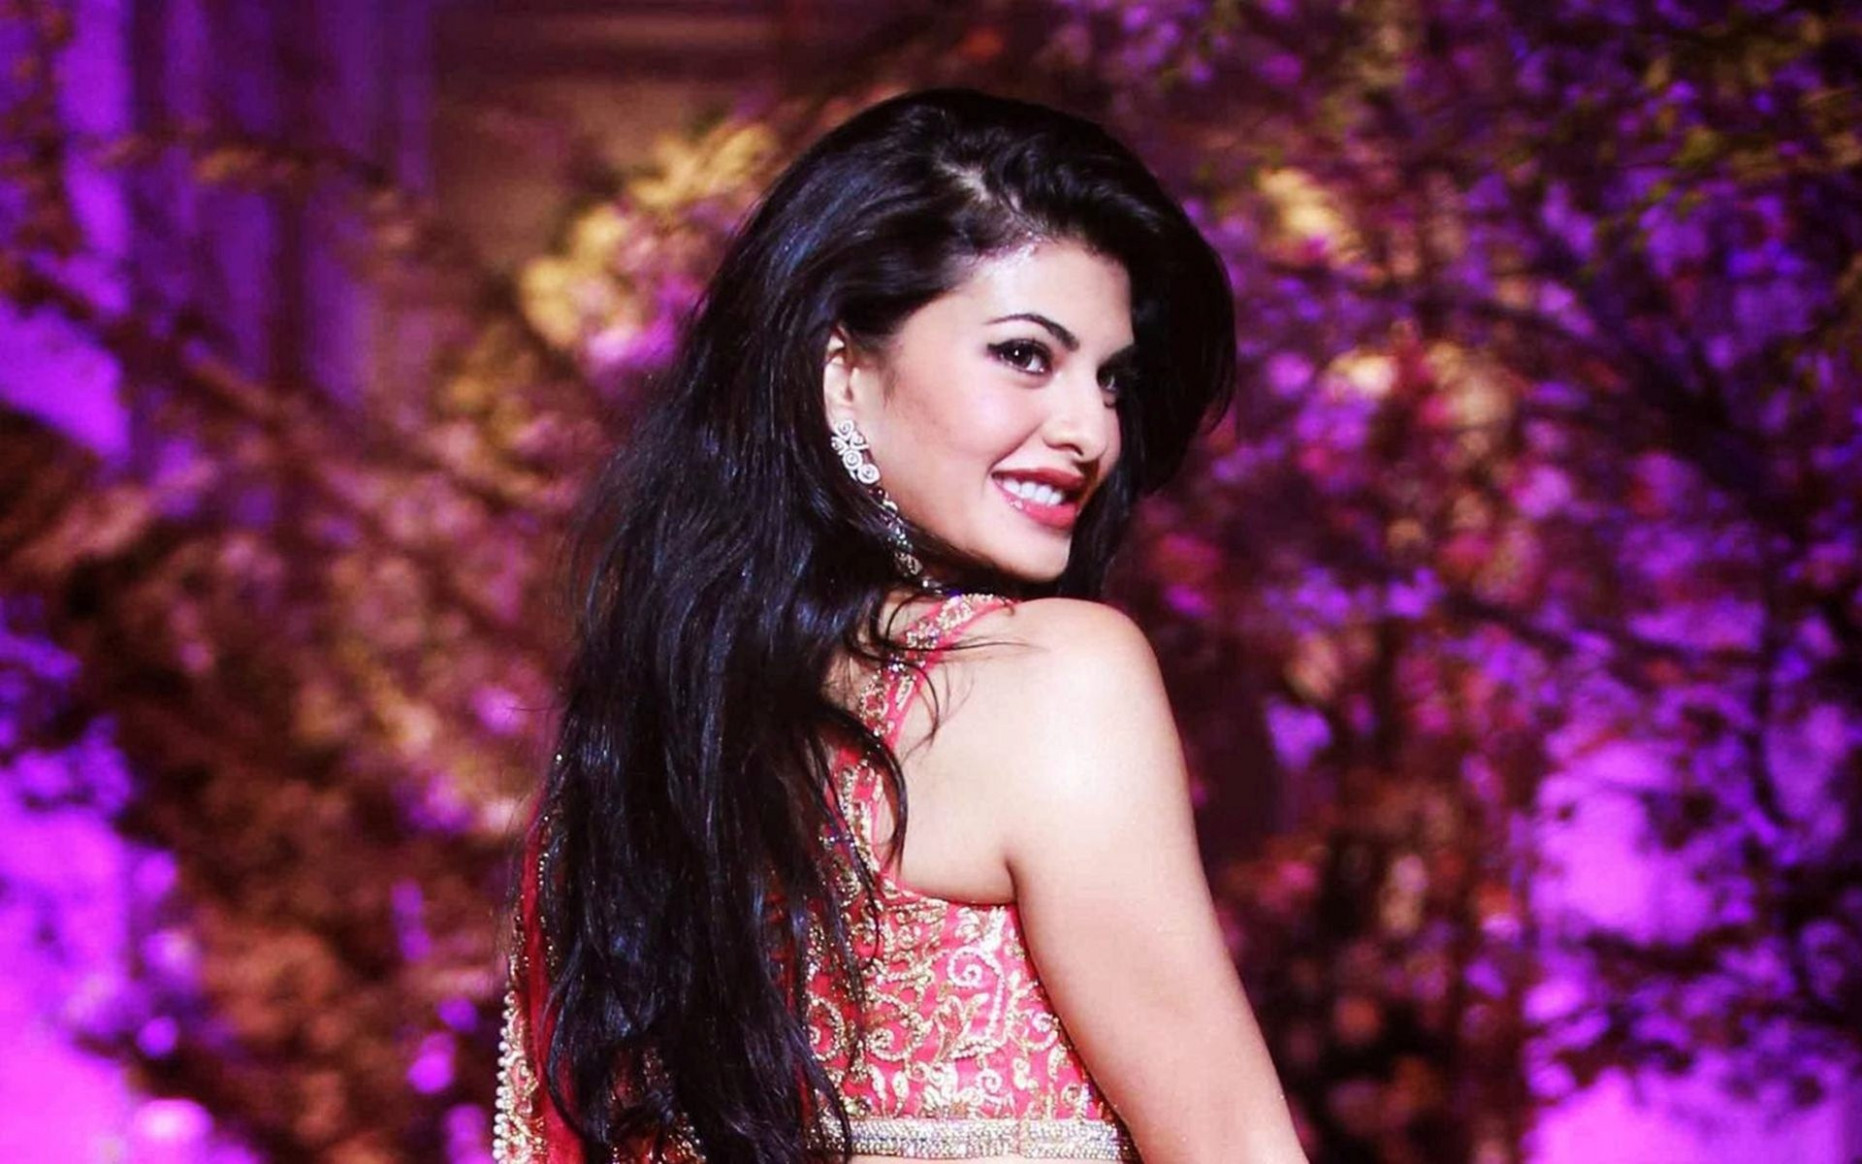 Lovely HD Wallpapers of Jacqueline Fernandez Bollywood ...